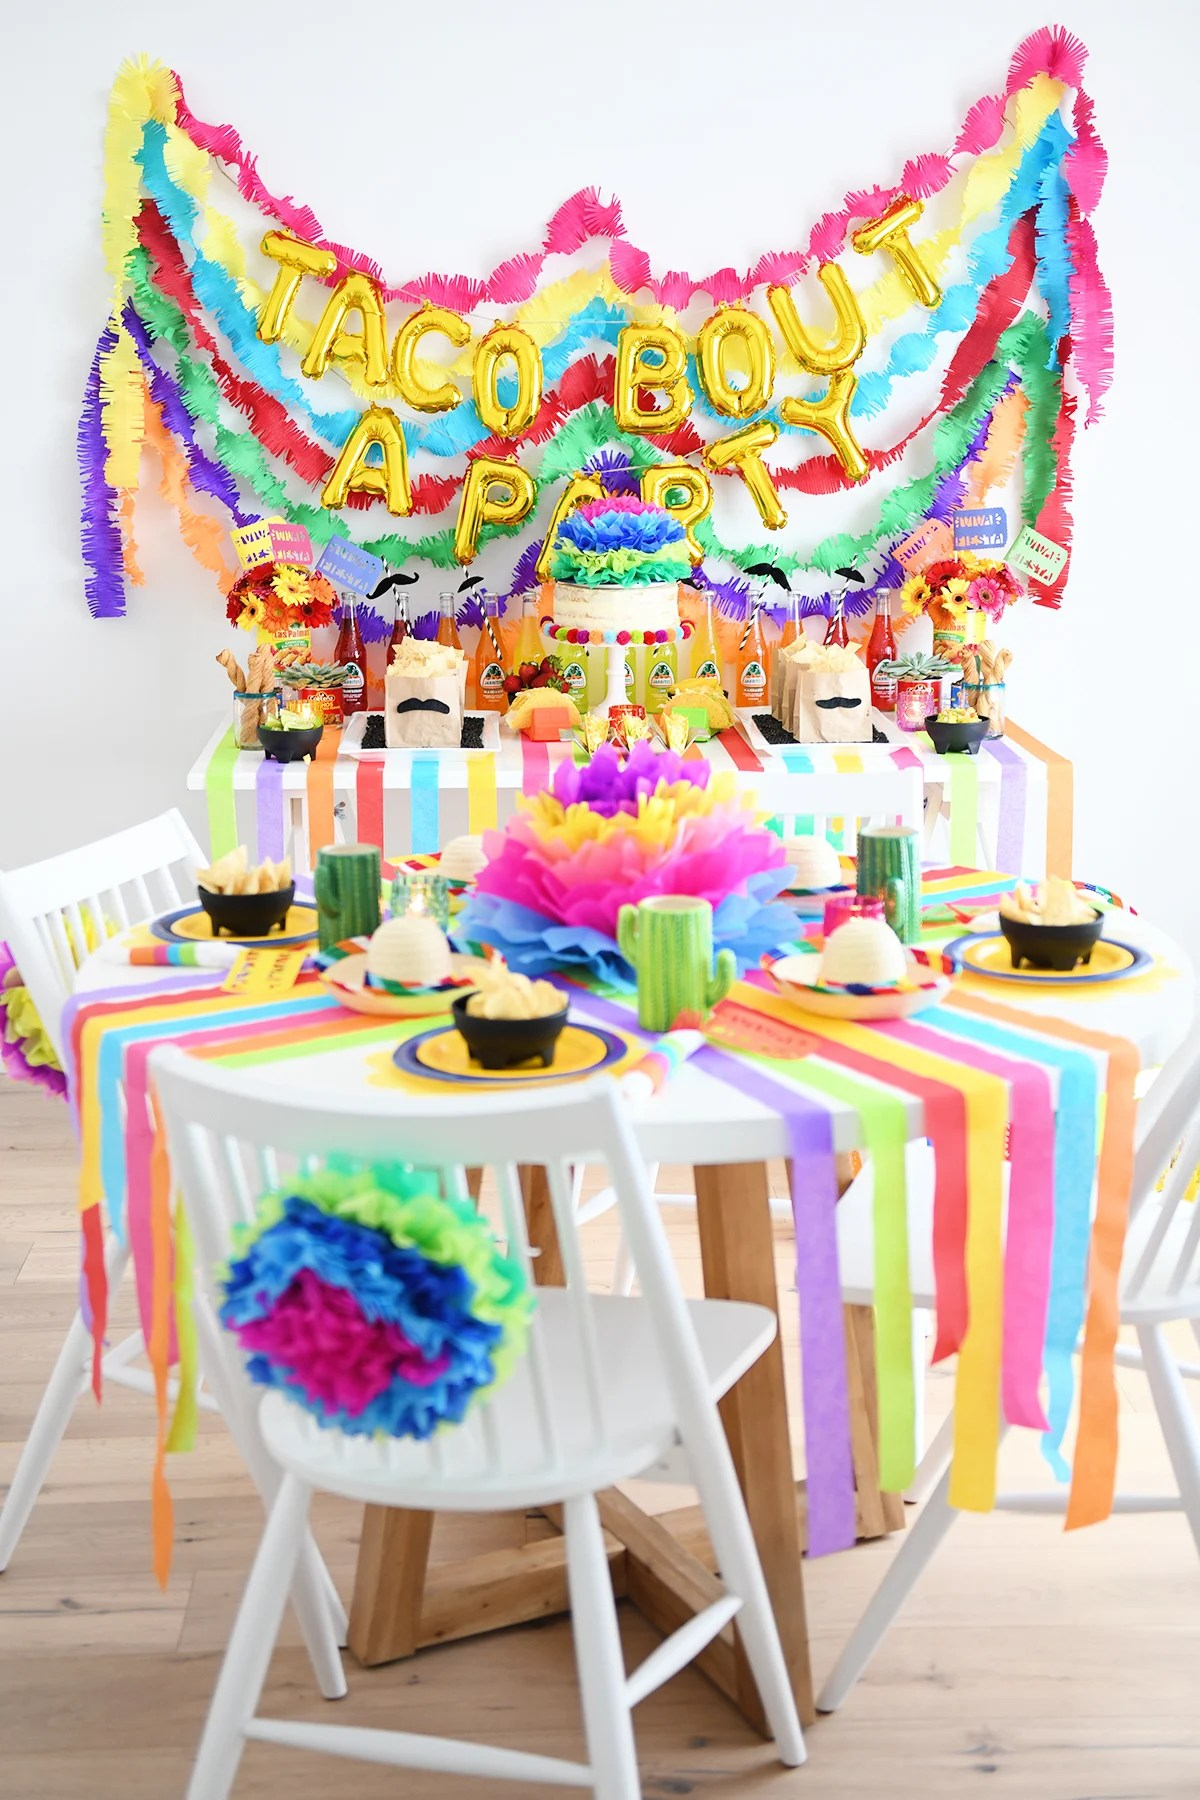 Taco Bout A Party Fiesta Party Ideas Pink Peppermint Design